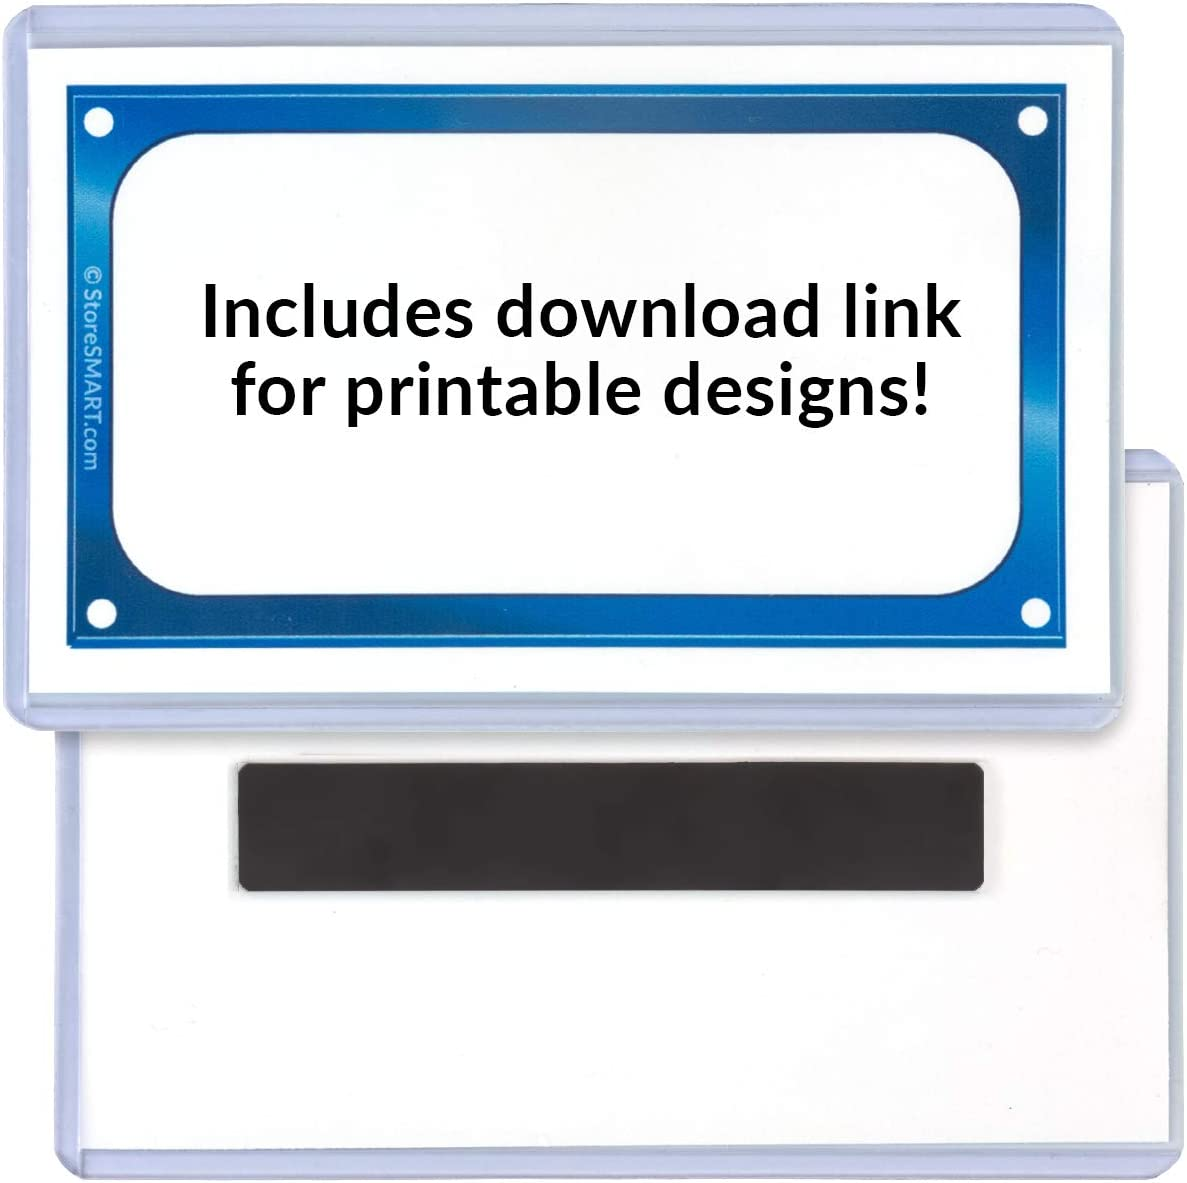 StoreSMART 3 x 5 Rigid Sign Holders with Downloadable Inserts RSH3X5M-50 Magnetic Back 50-Pack